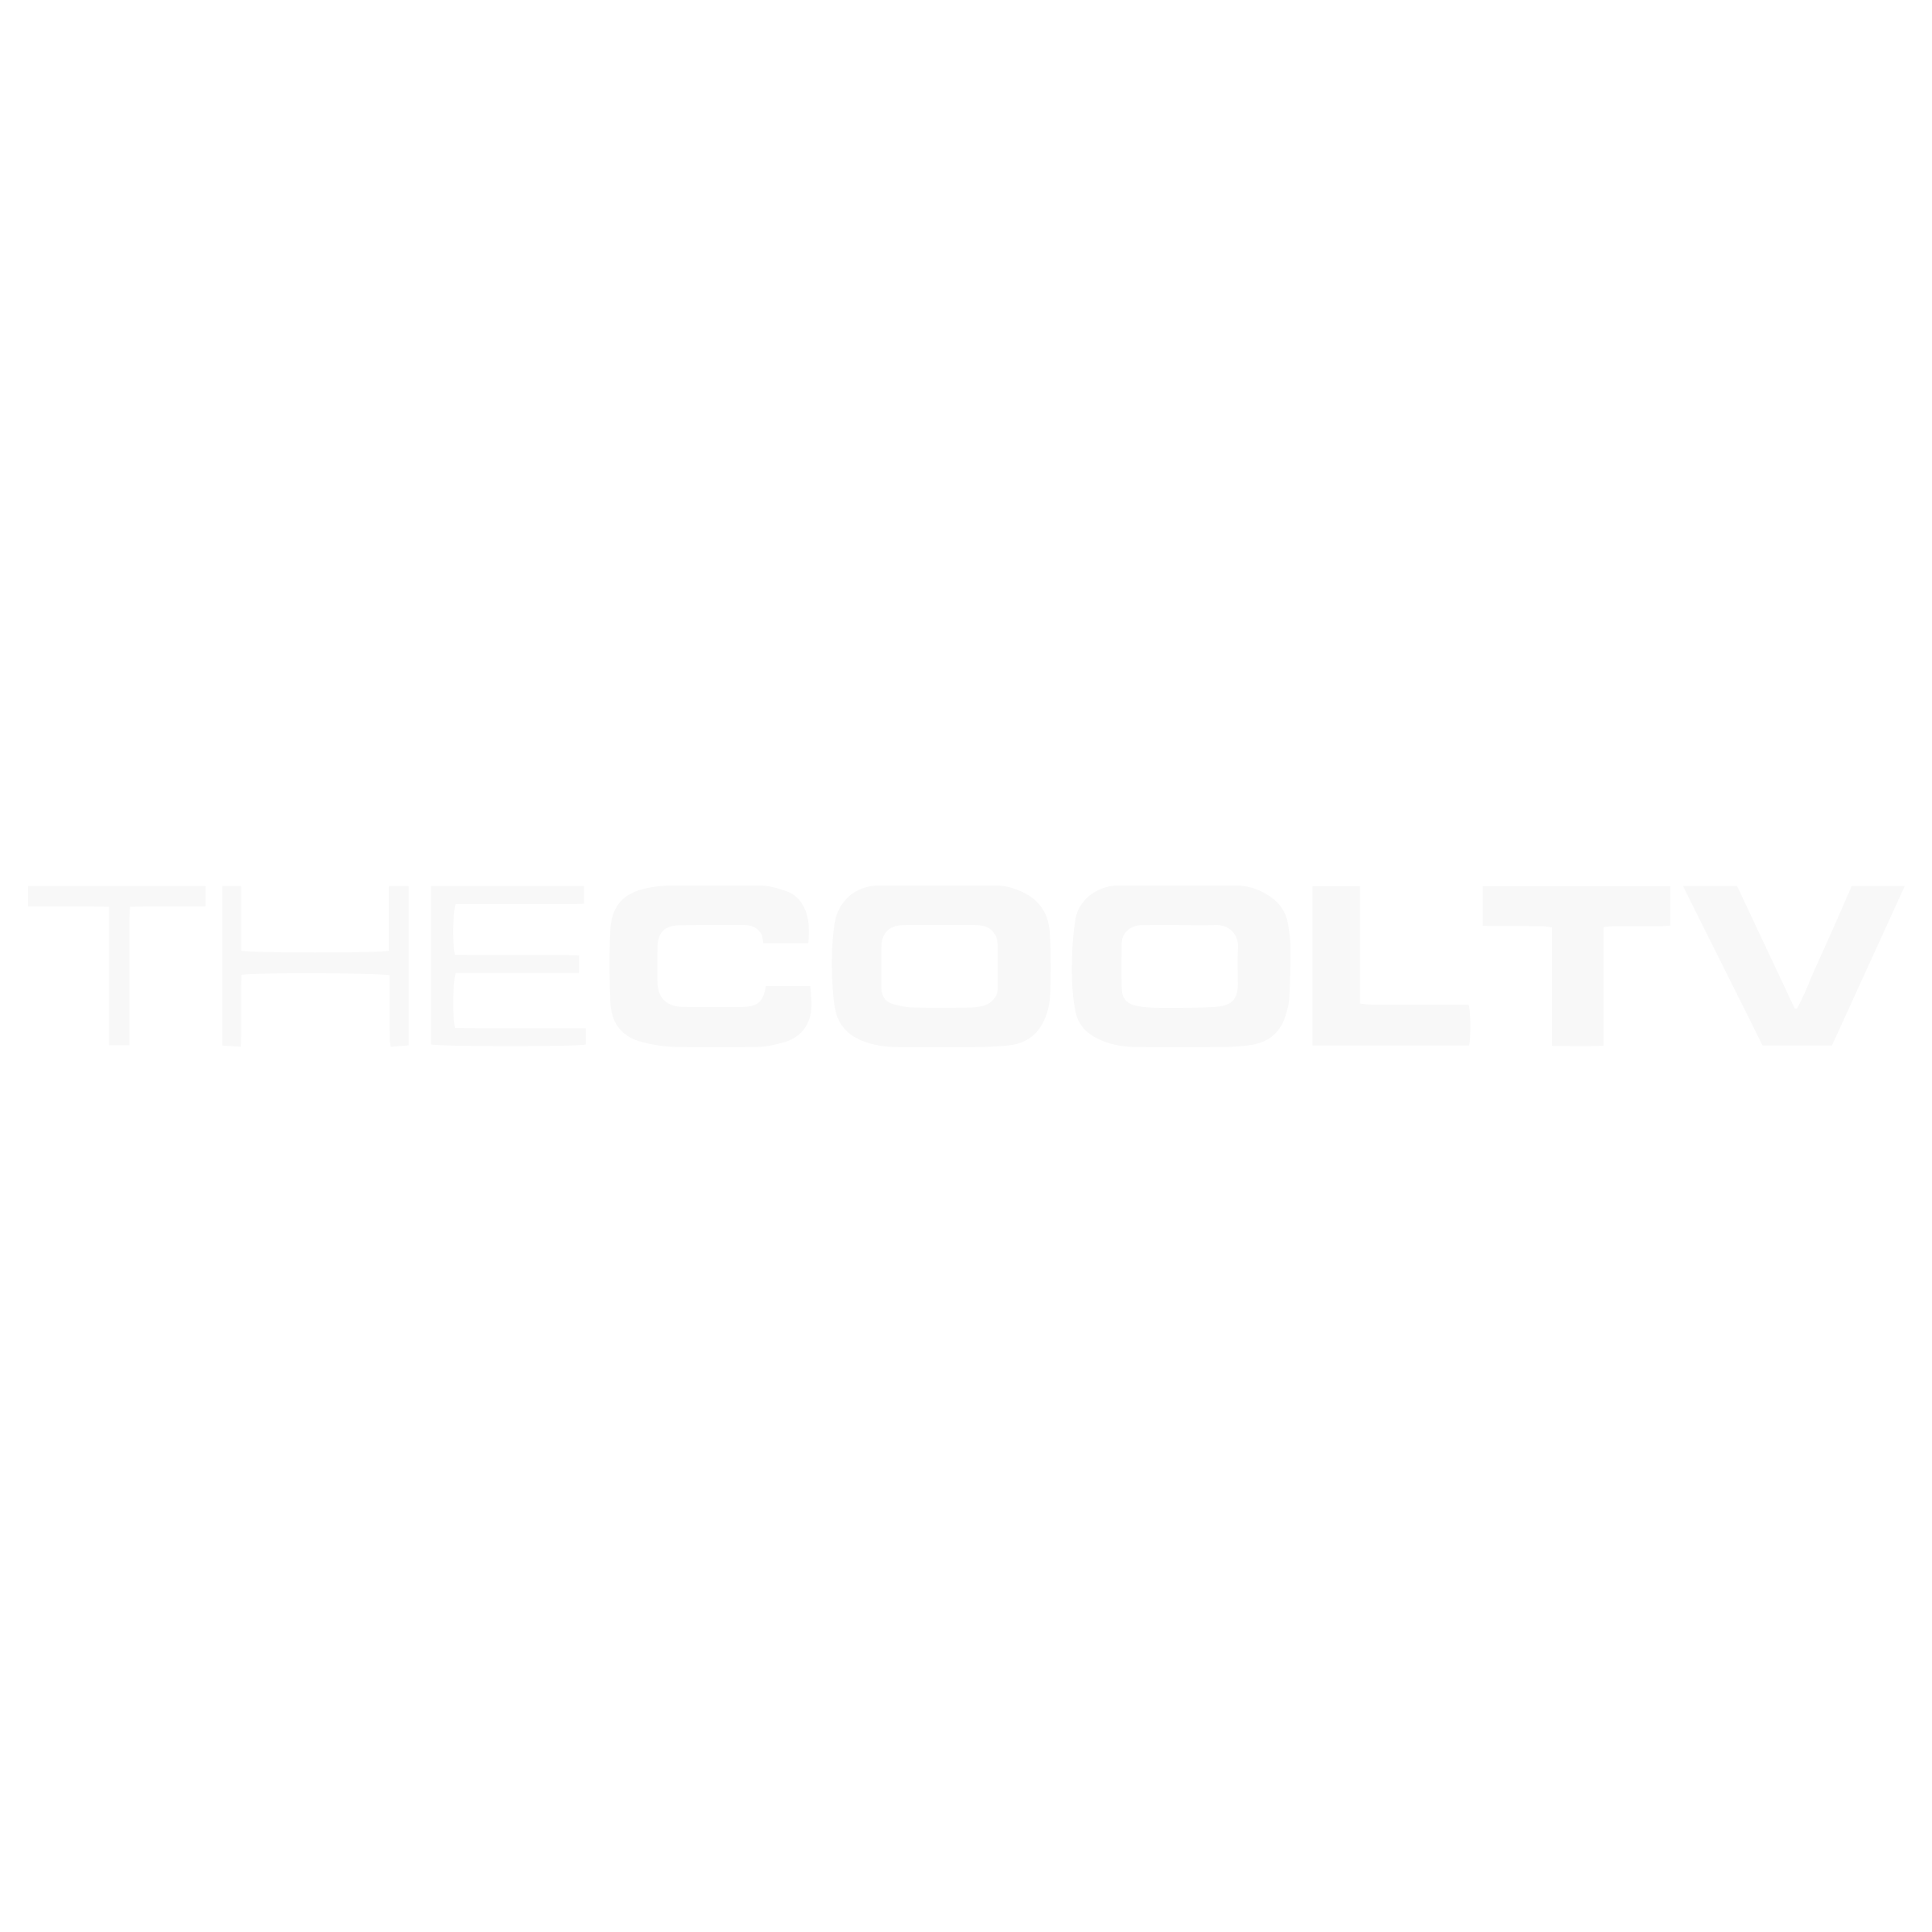 Thecooltelevision Color Dark